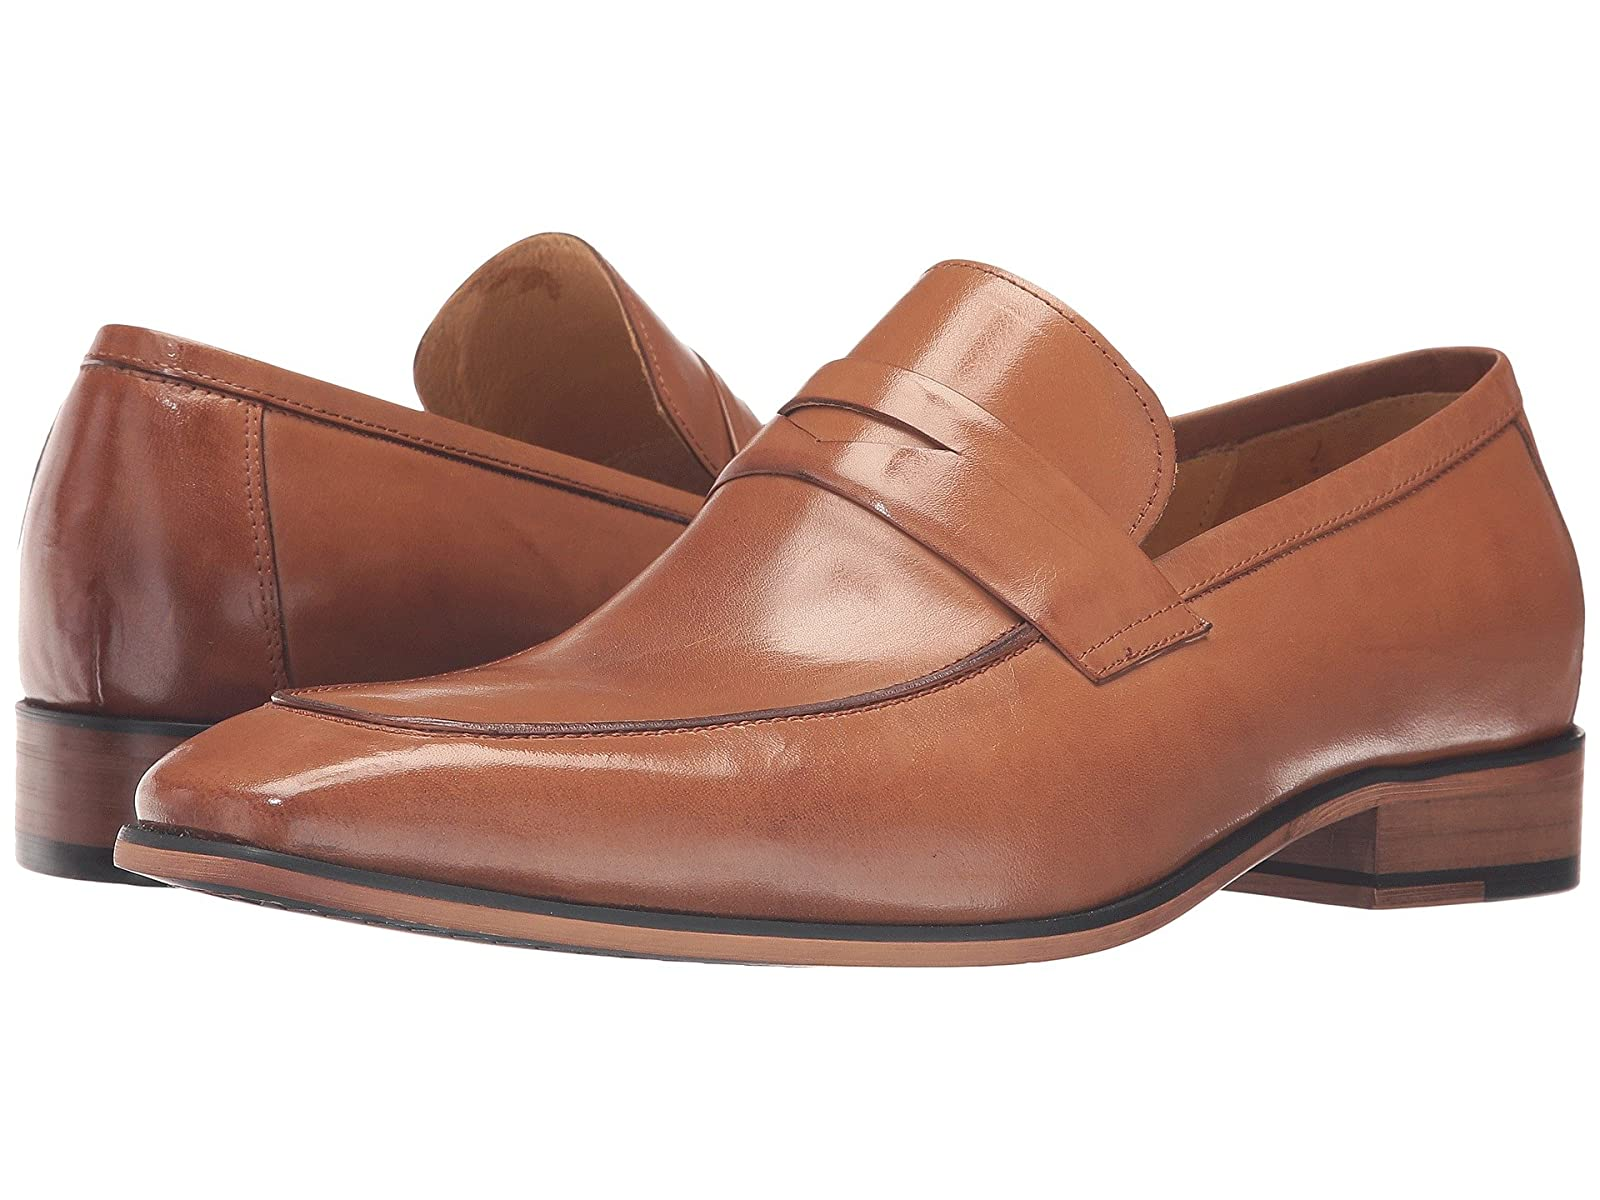 Carrucci Penny WiseAtmospheric grades have affordable shoes